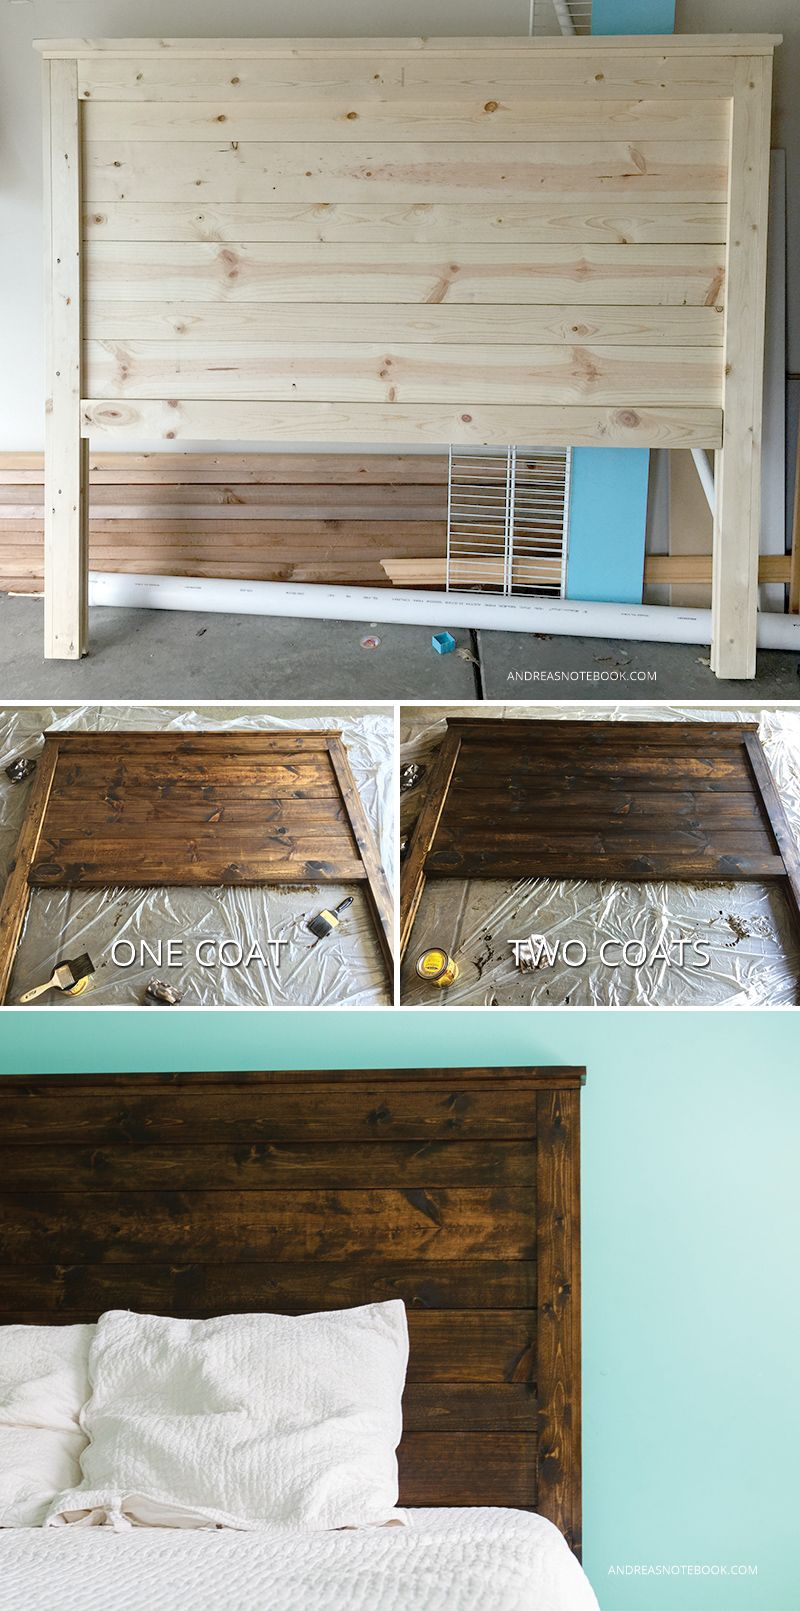 Make your own diy rustic headboard andreasnotebook com